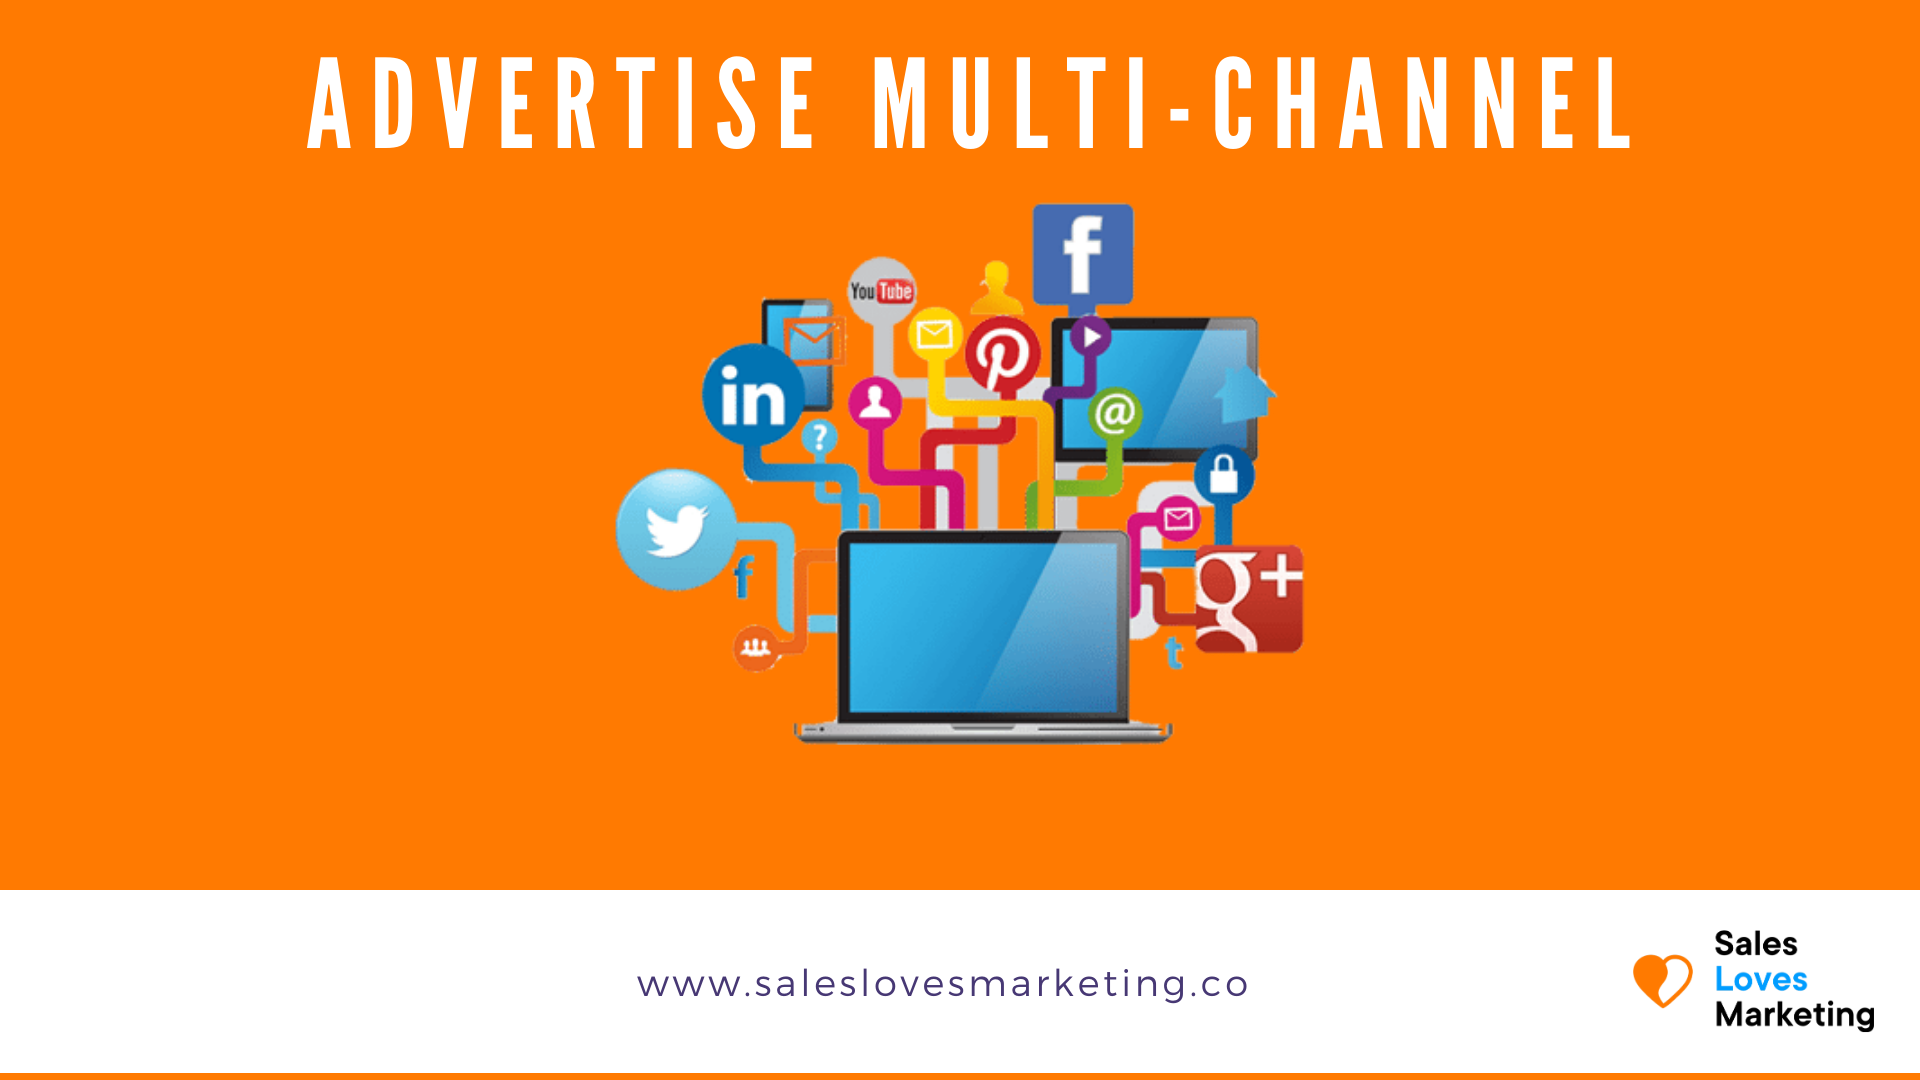 advertise multi channel to generate b2b website traffic